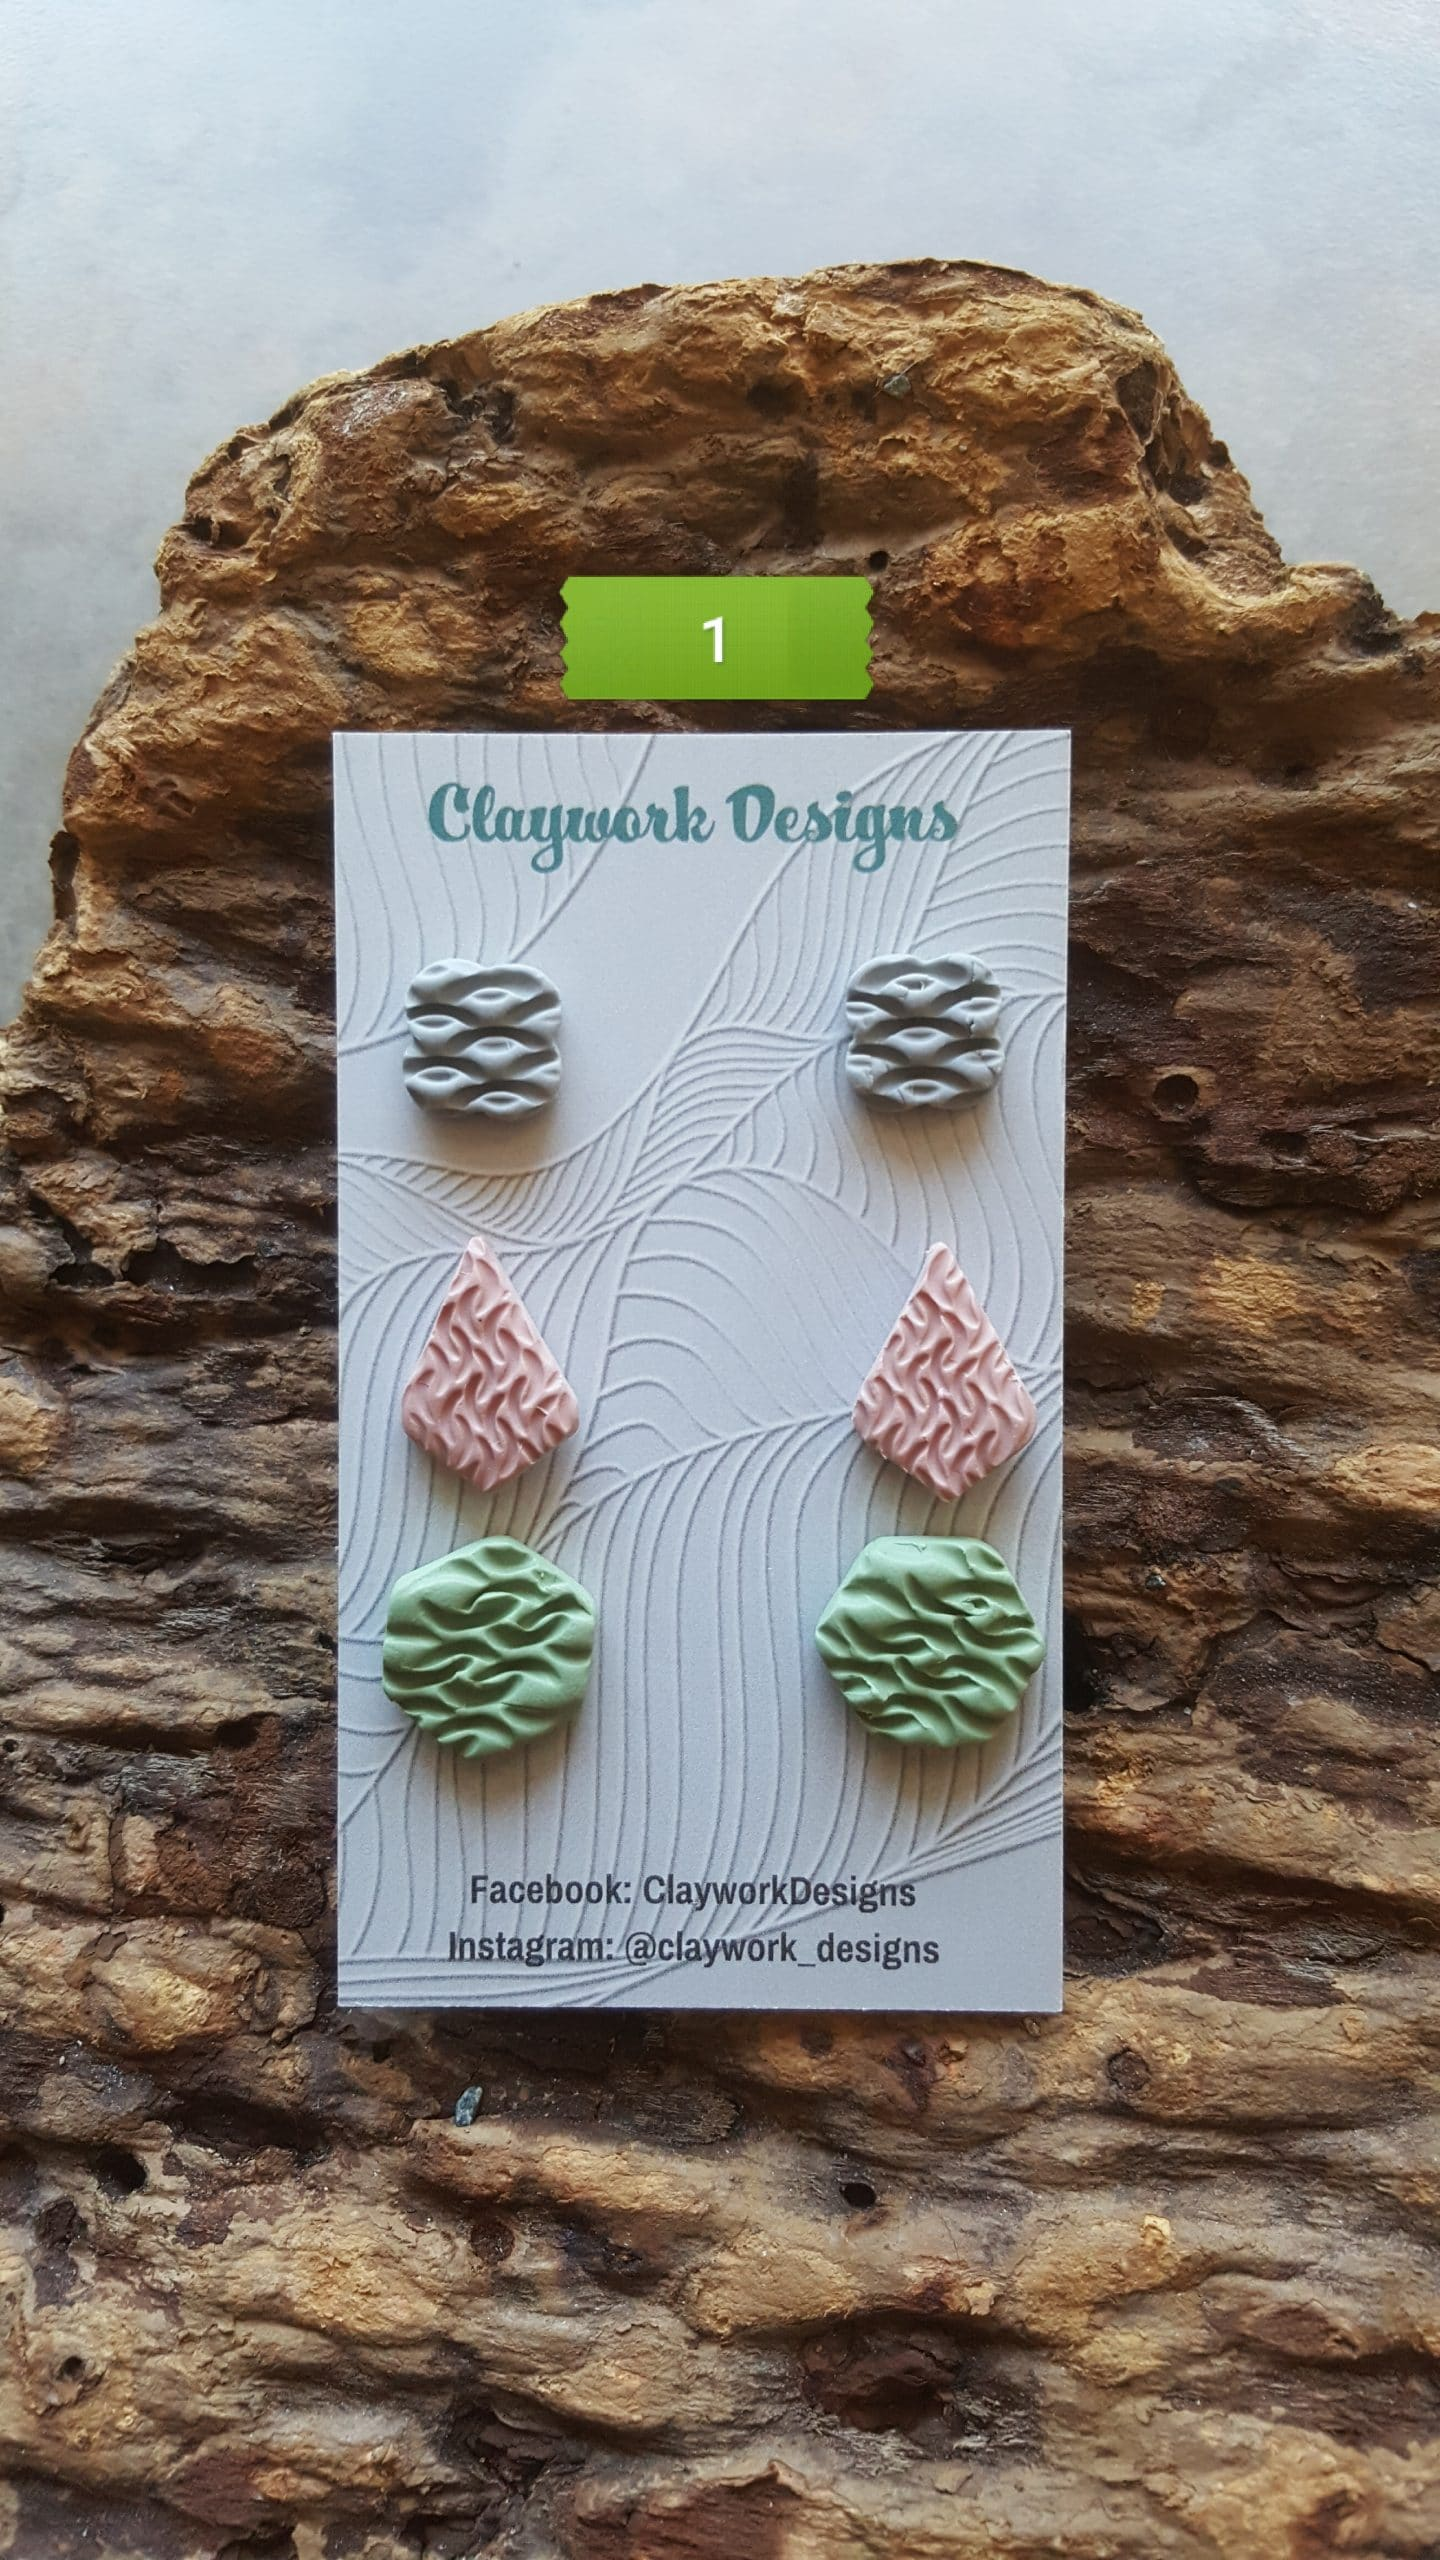 Wirework Designs | Handcrafted chainmaille jewellery and chainmaille products | Chainmaille Weave Stud Earring - 3 Packs | 20210620_171950